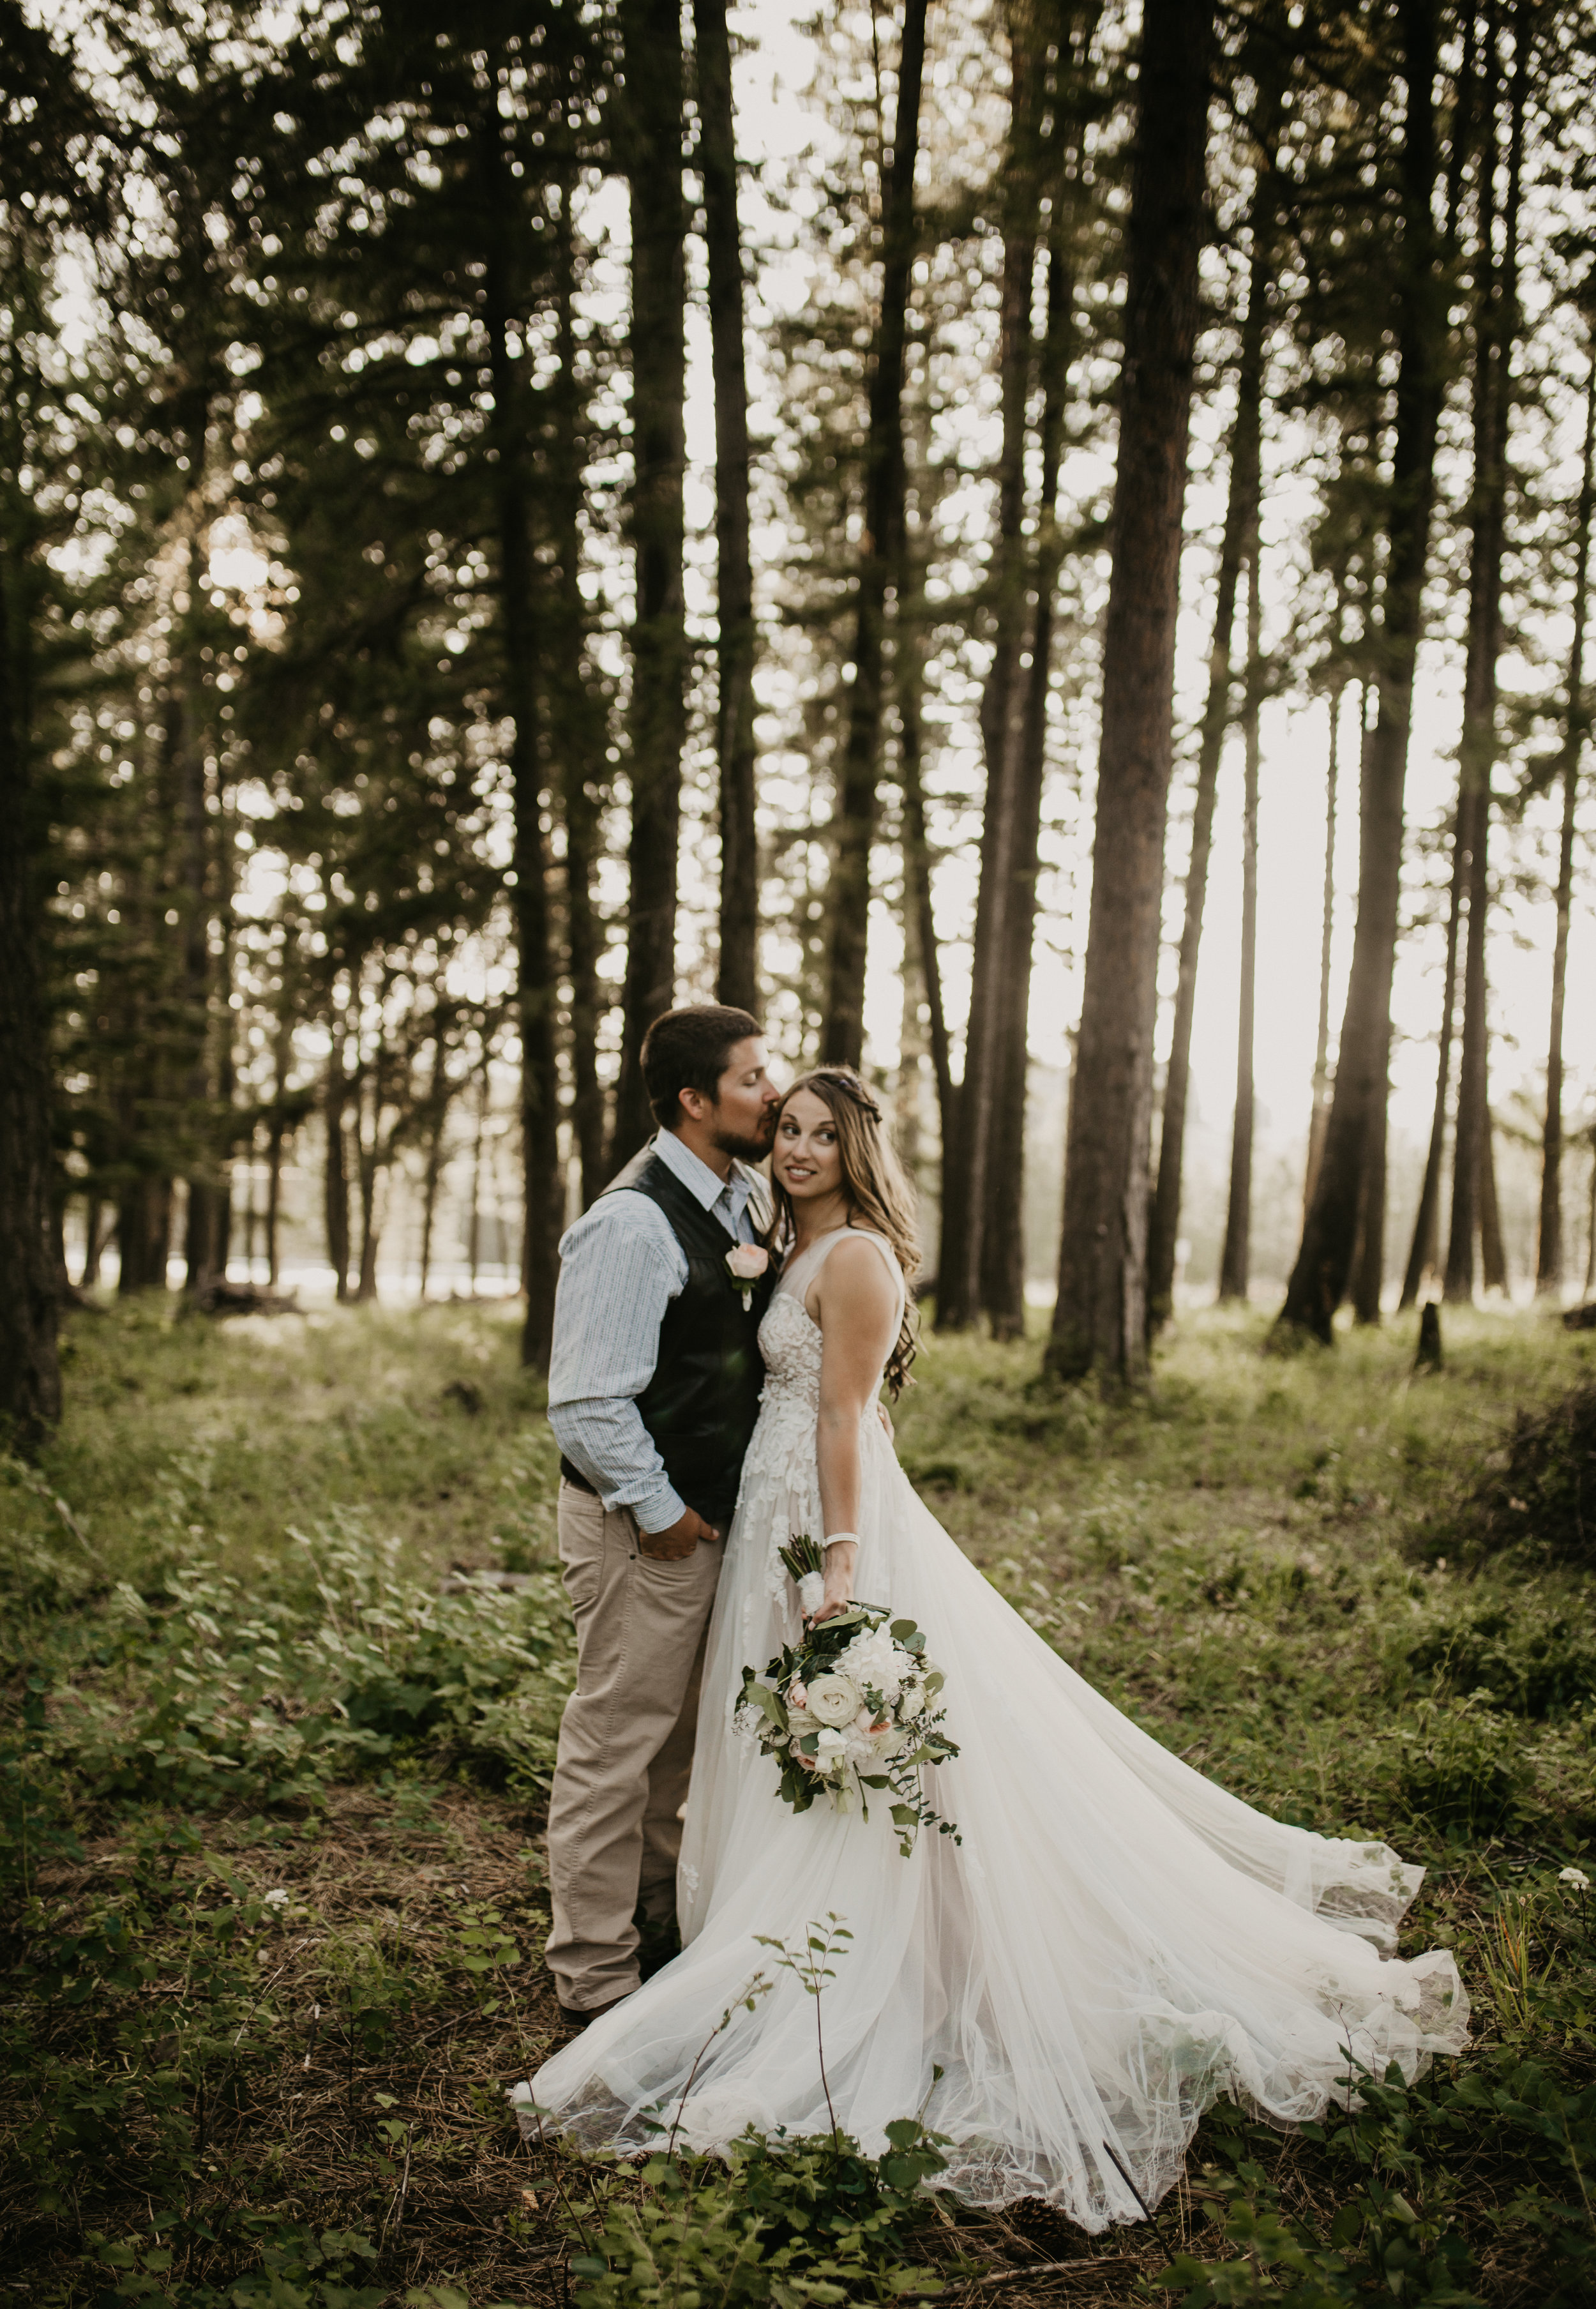 Bride and Groom Session in a woodland scene